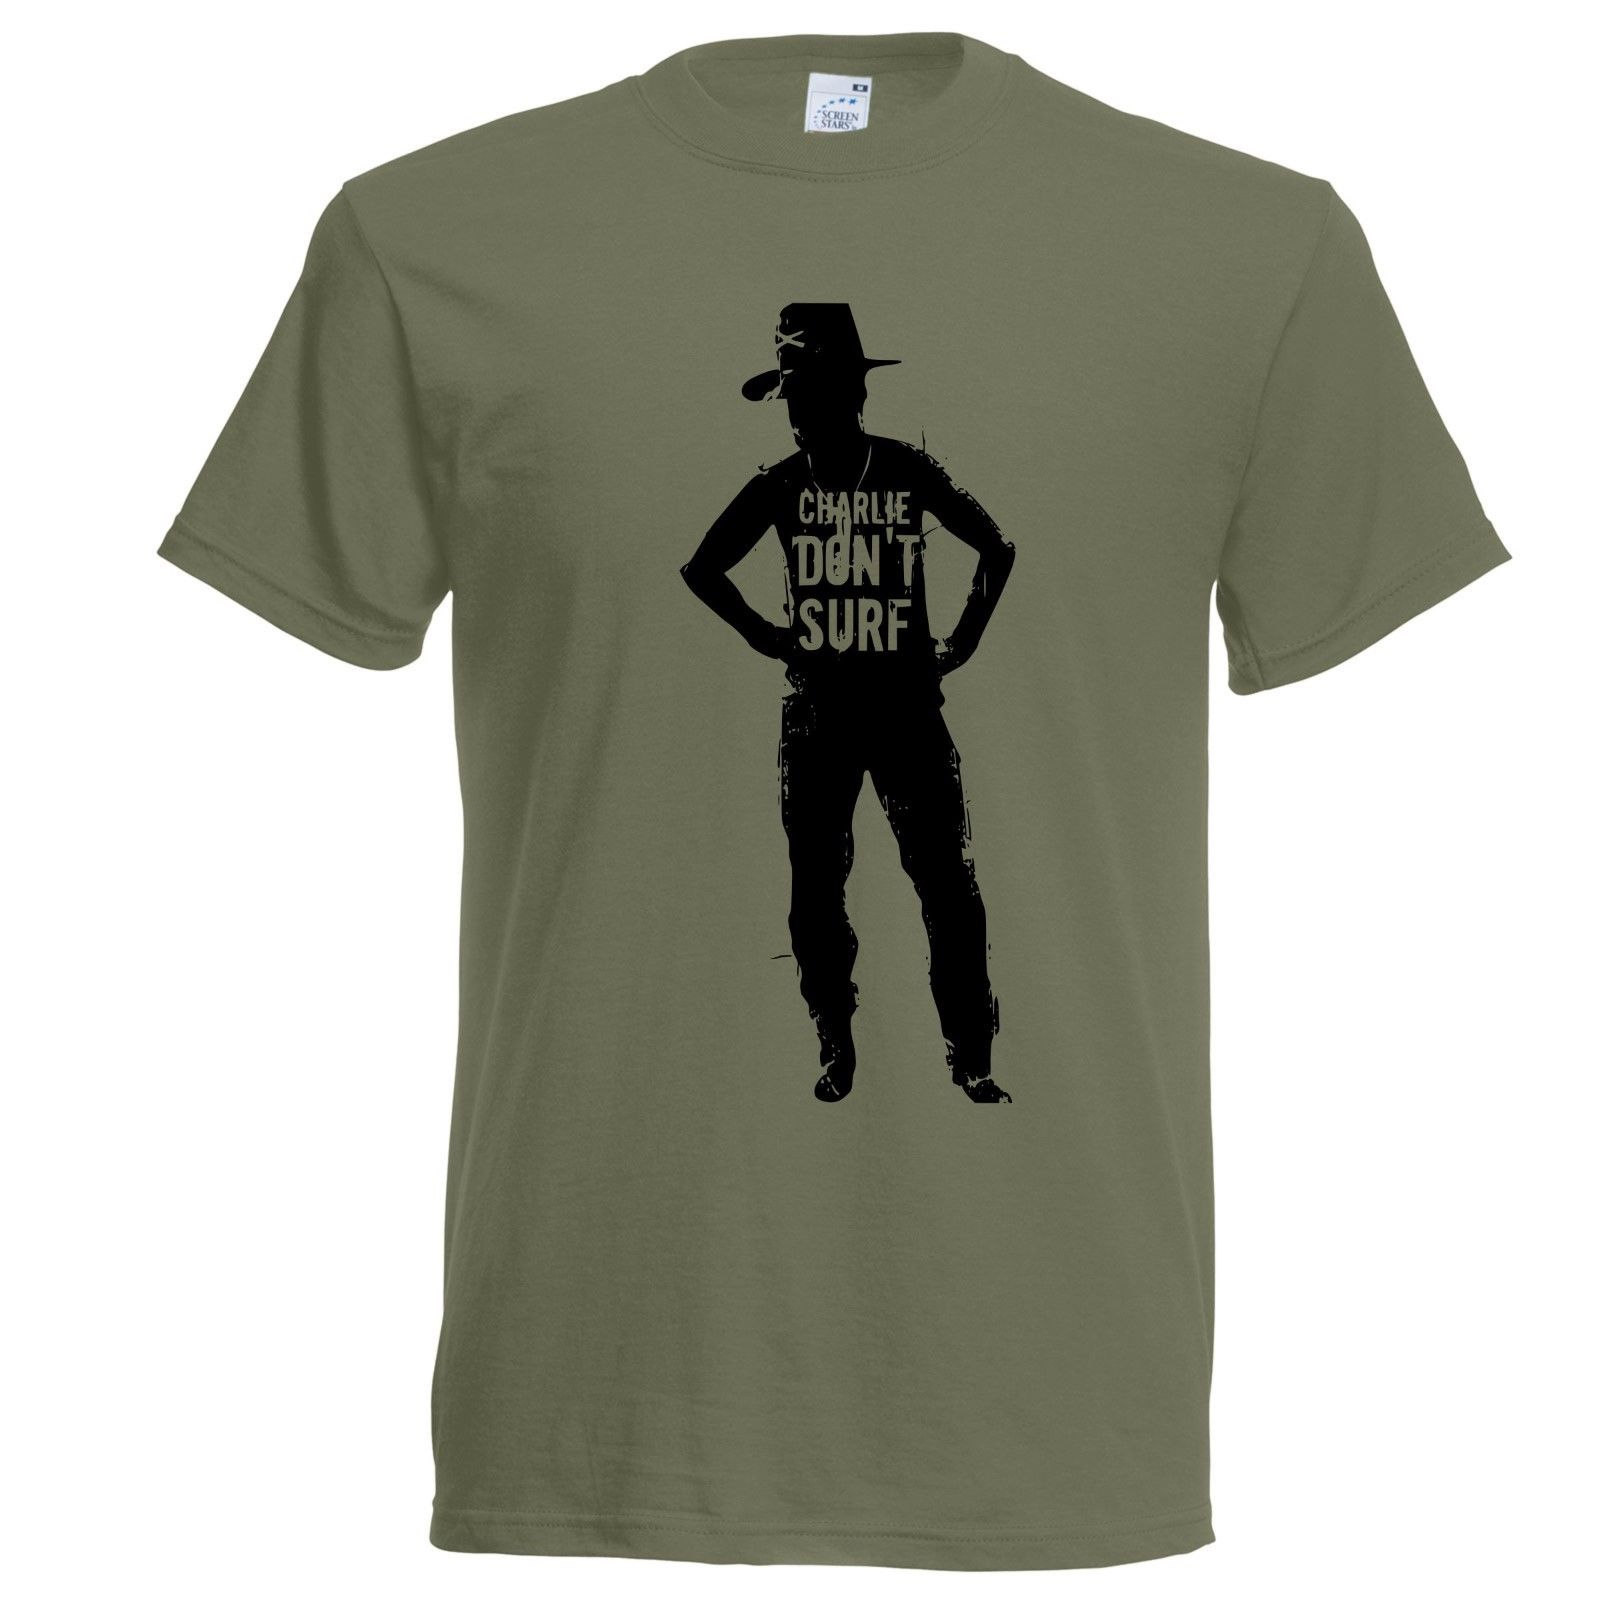 Apocalypse Now Charlie Don t Surfer T Shirt Cult Movie Vietnam Kilgore Nepalm Fashion T Shirts image